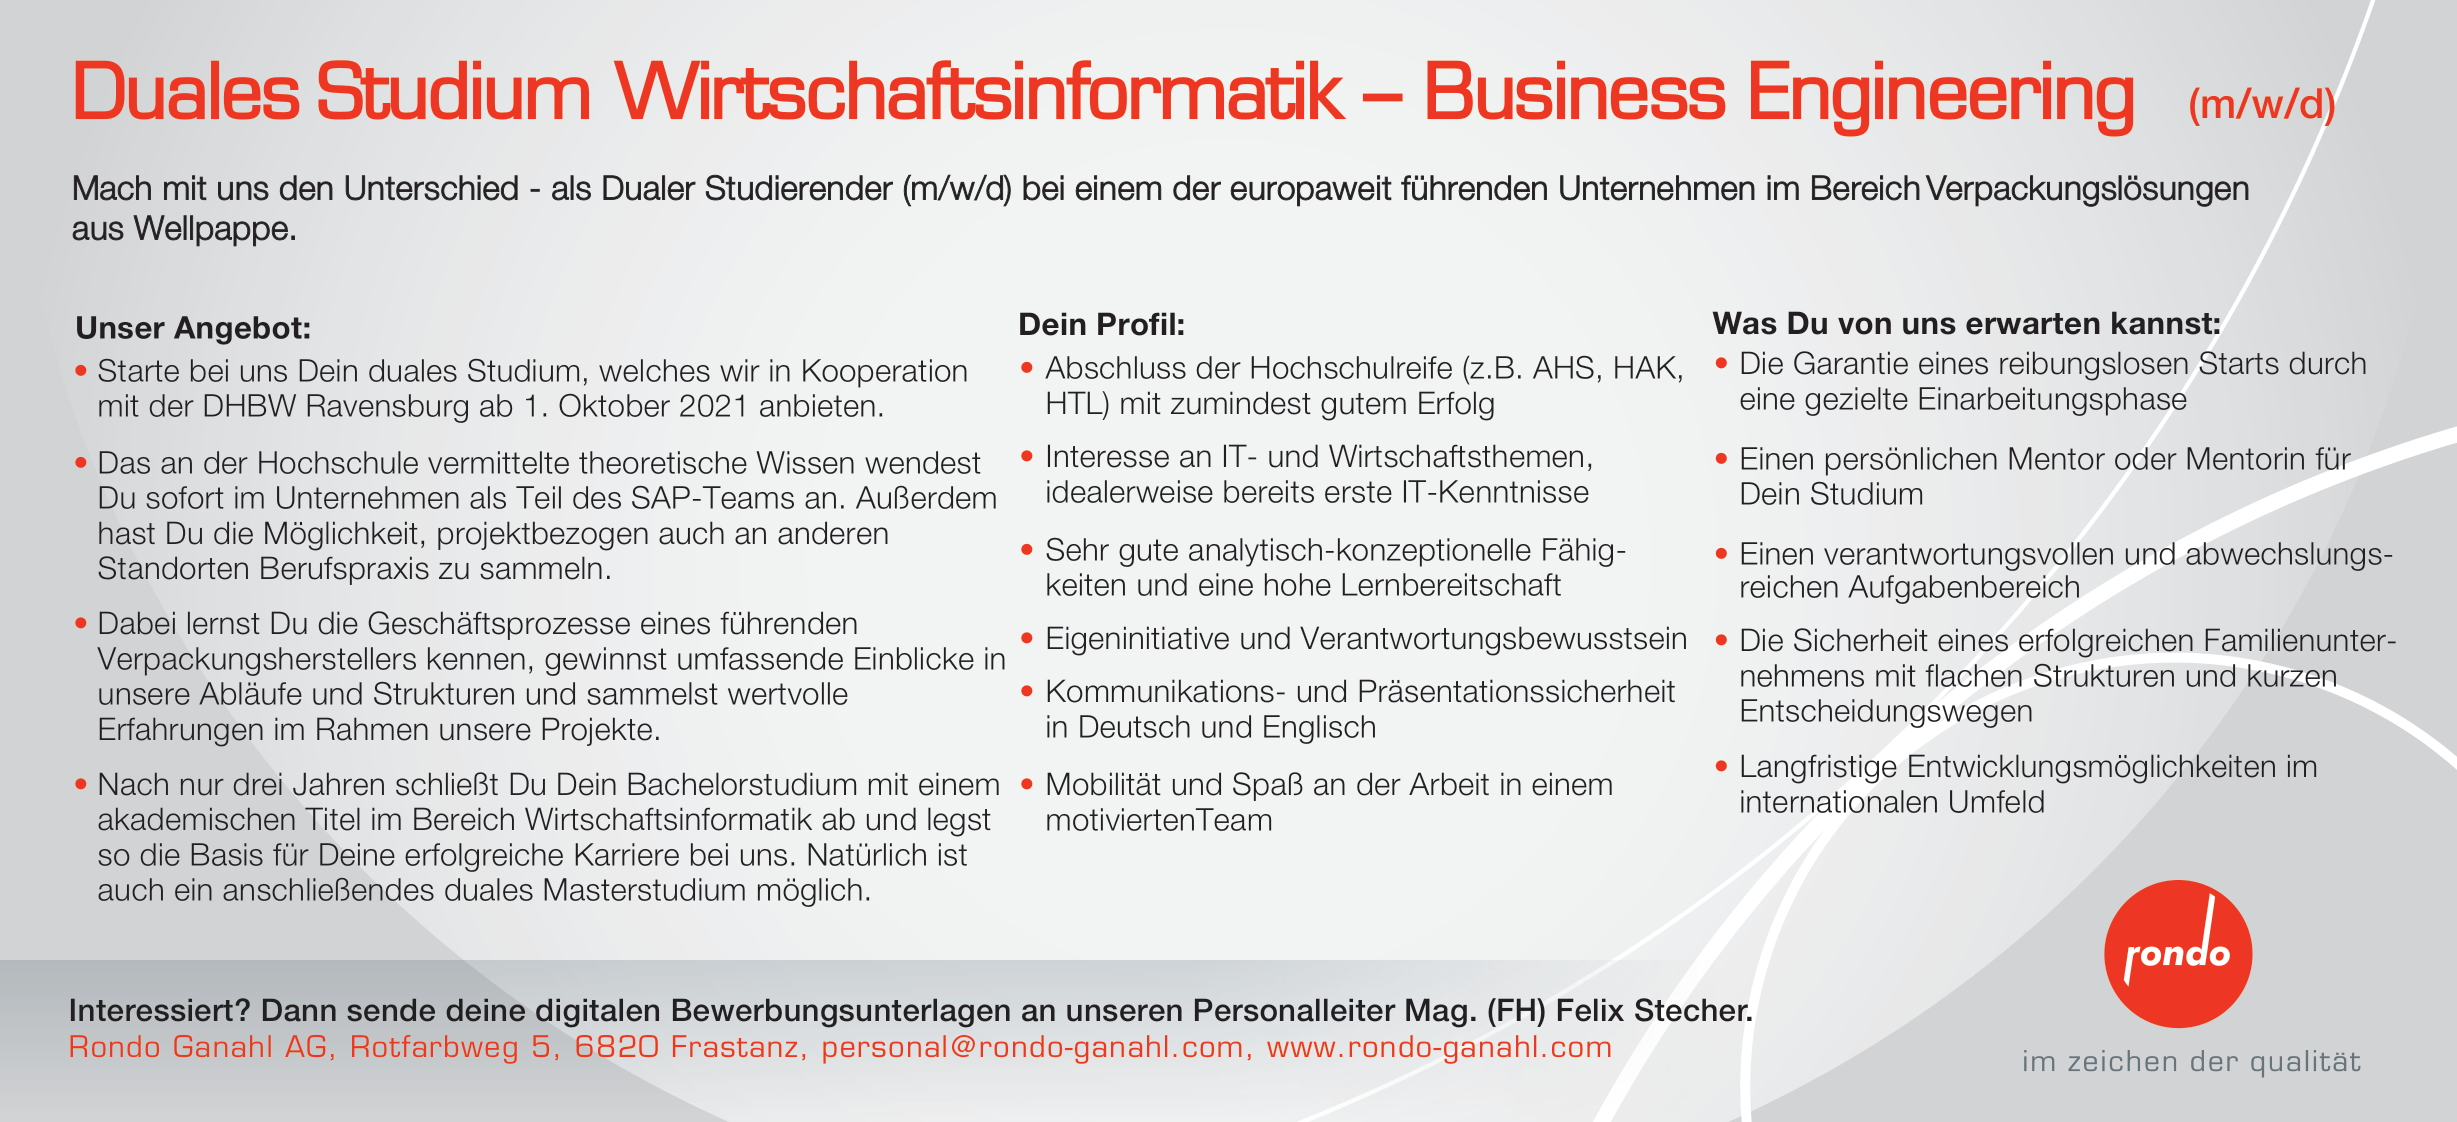 Duales Studium Wirtschaftsinformatik - Business Engineering